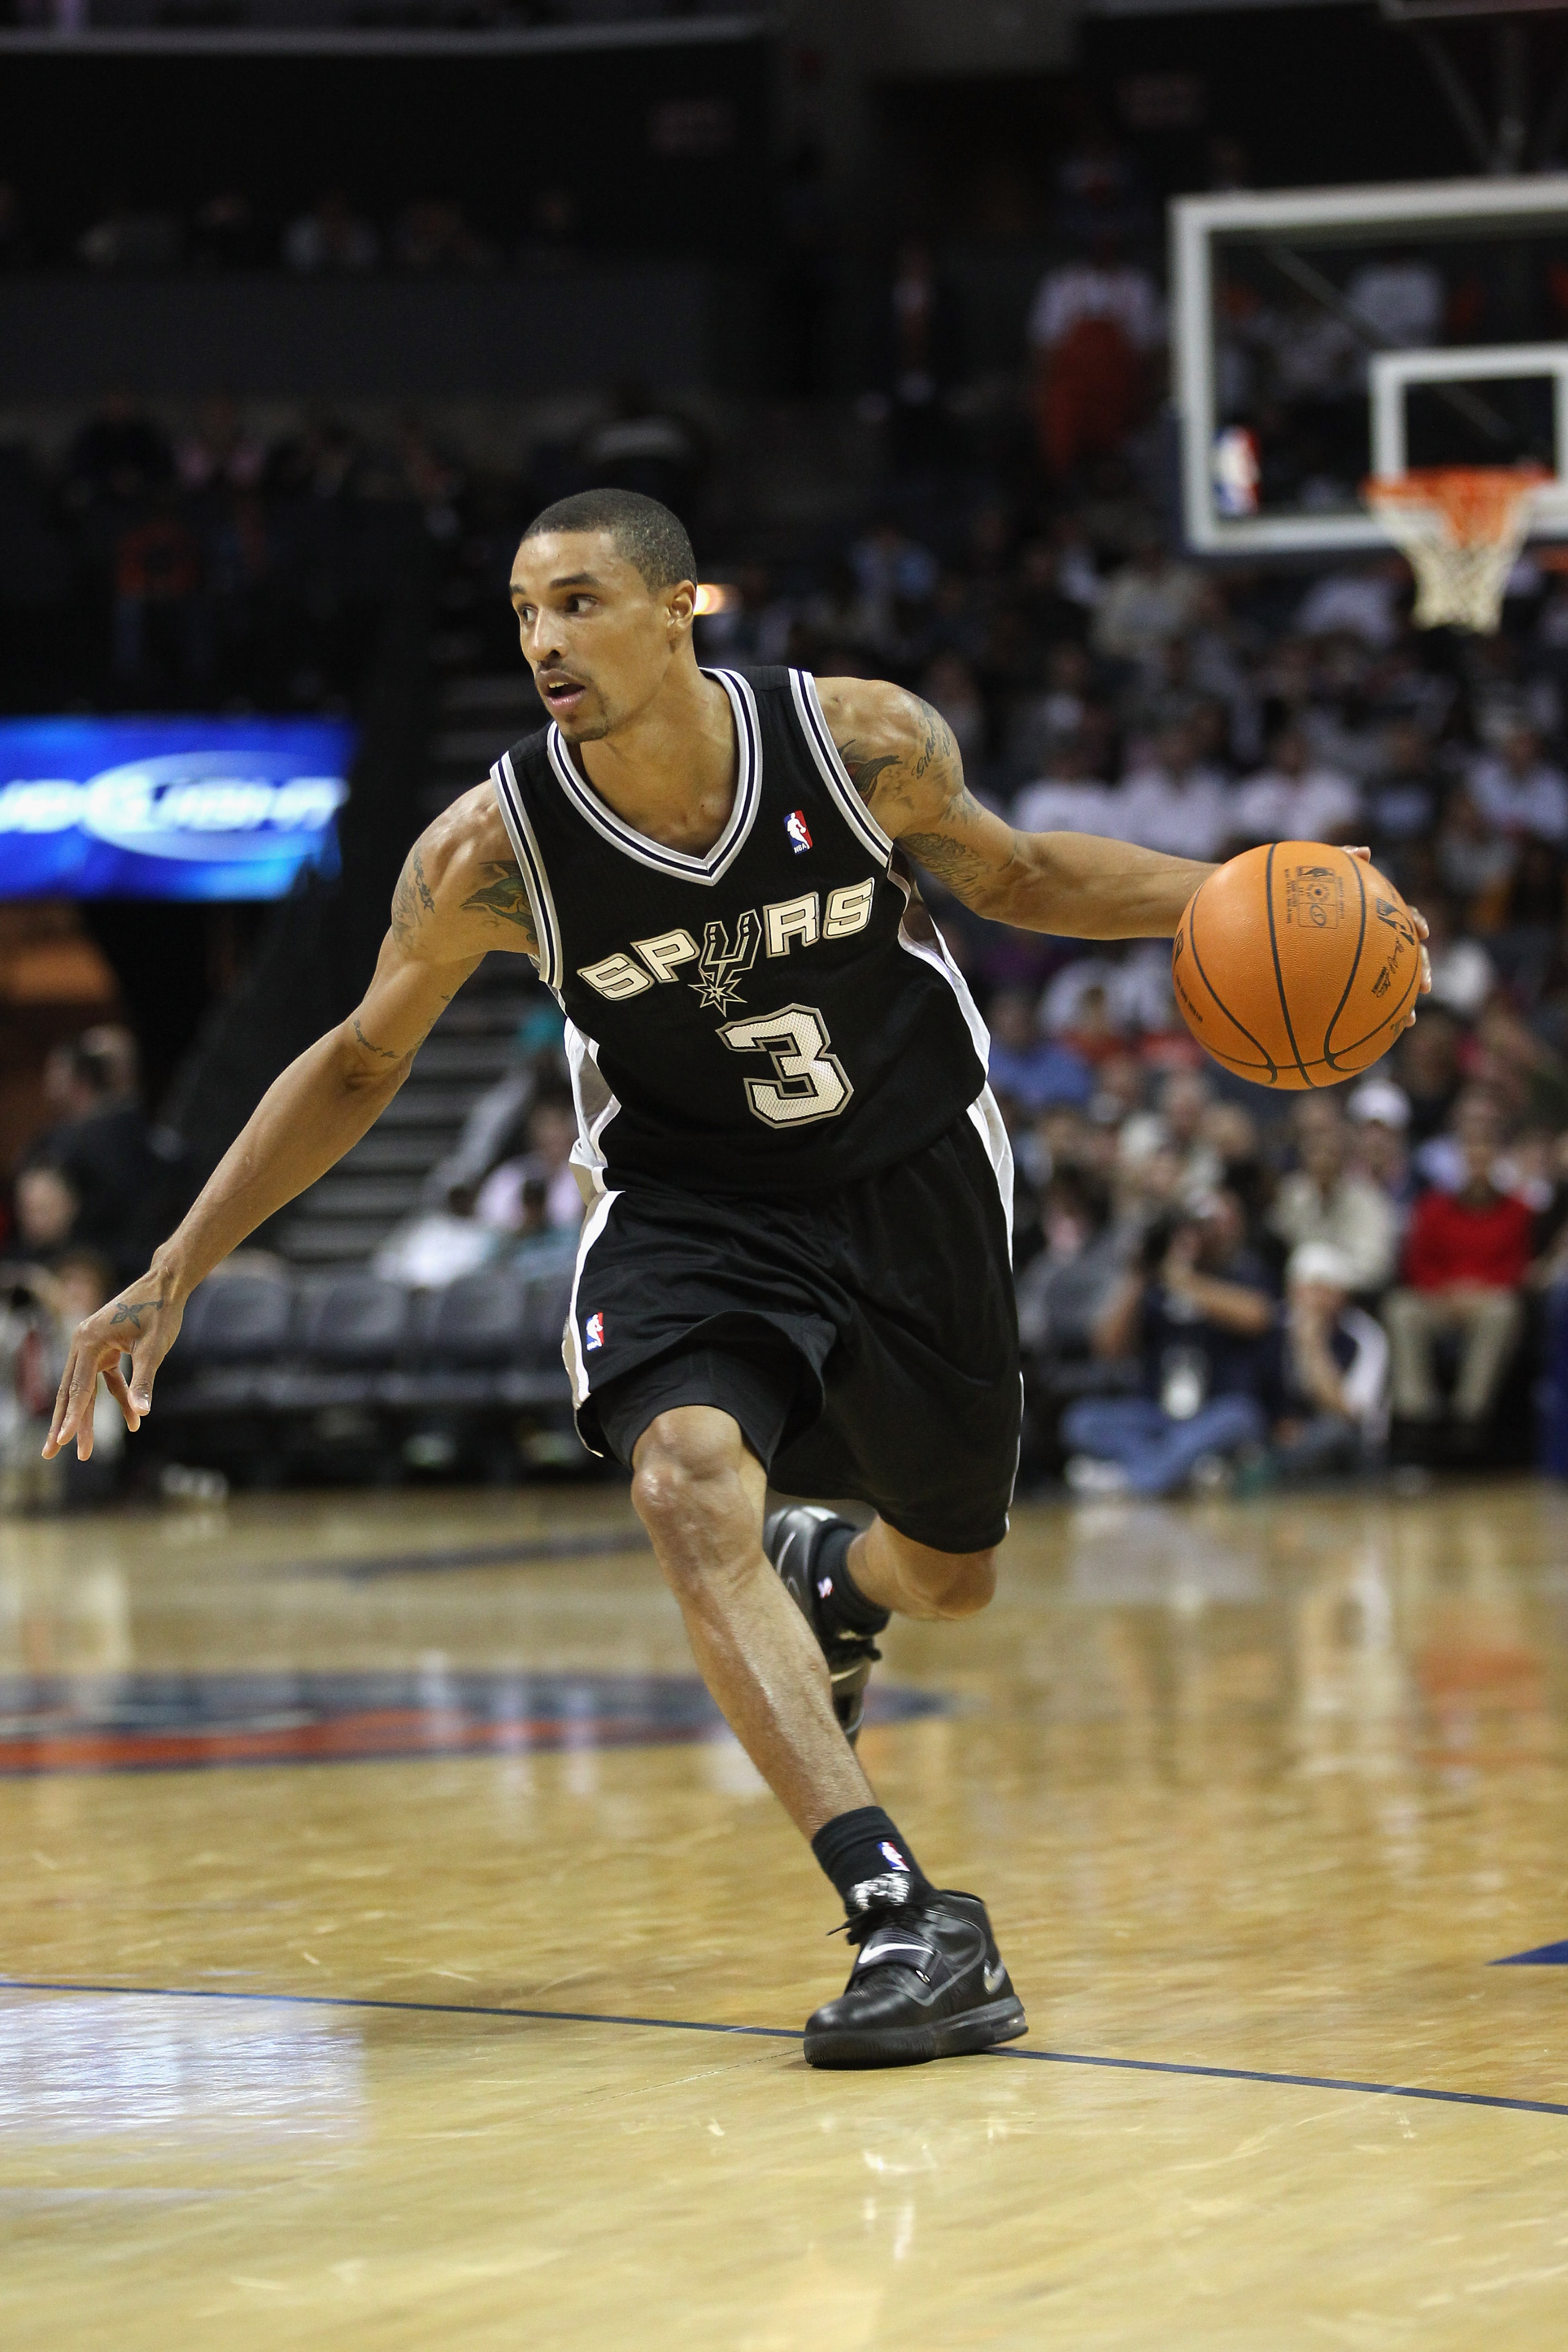 CHARLOTTE, NC - NOVEMBER 08:  George Hill #3 of the San Antonio Spurs against the Charlotte Bobcats during their game at Time Warner Cable Arena on November 8, 2010 in Charlotte, North Carolina.  NOTE TO USER: User expressly acknowledges and agrees that,